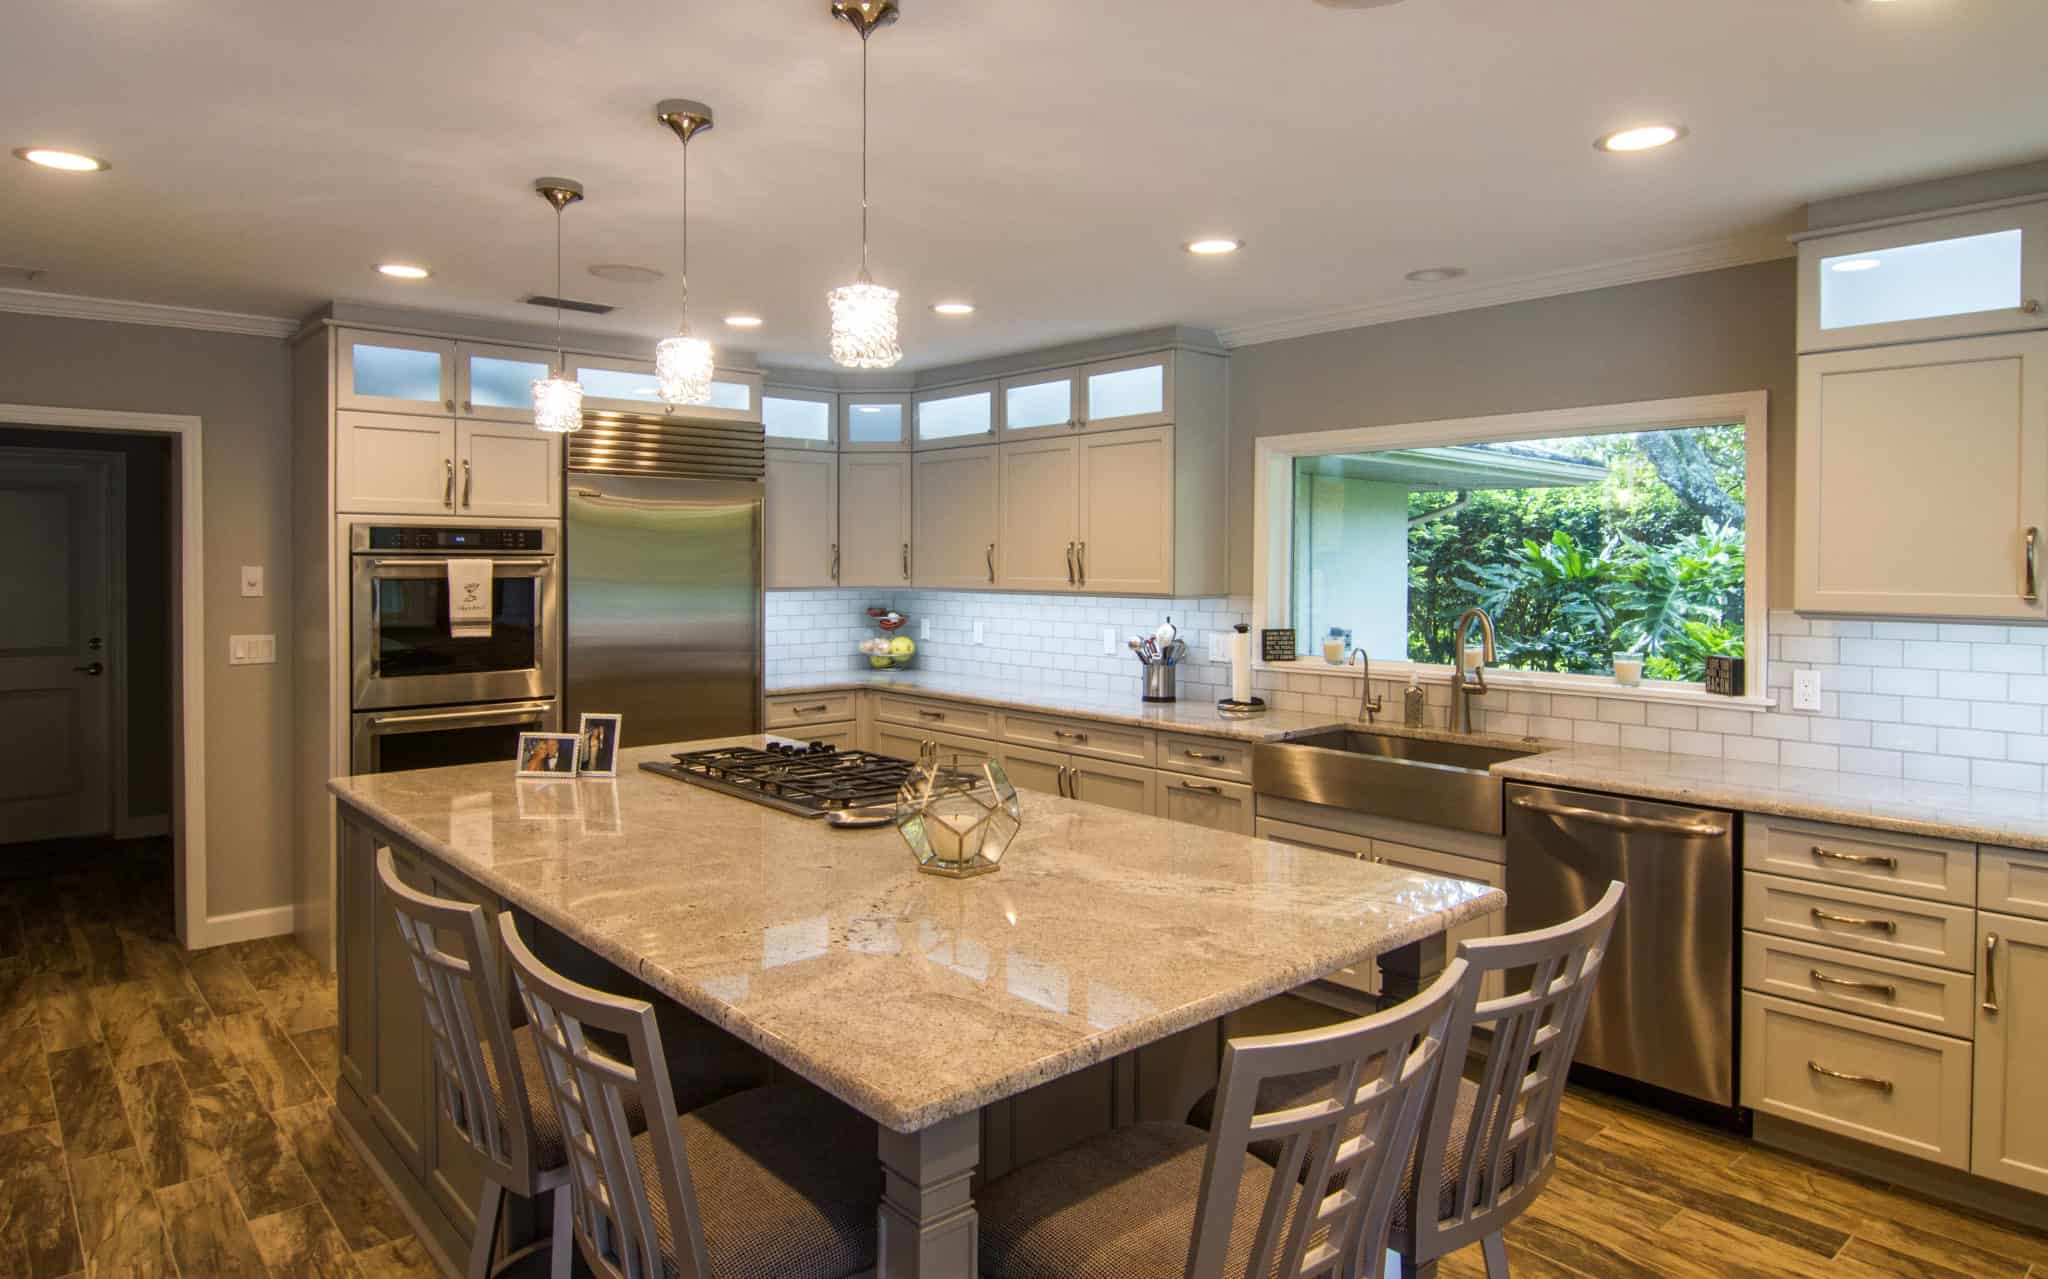 gray kitchen cabinets with large island